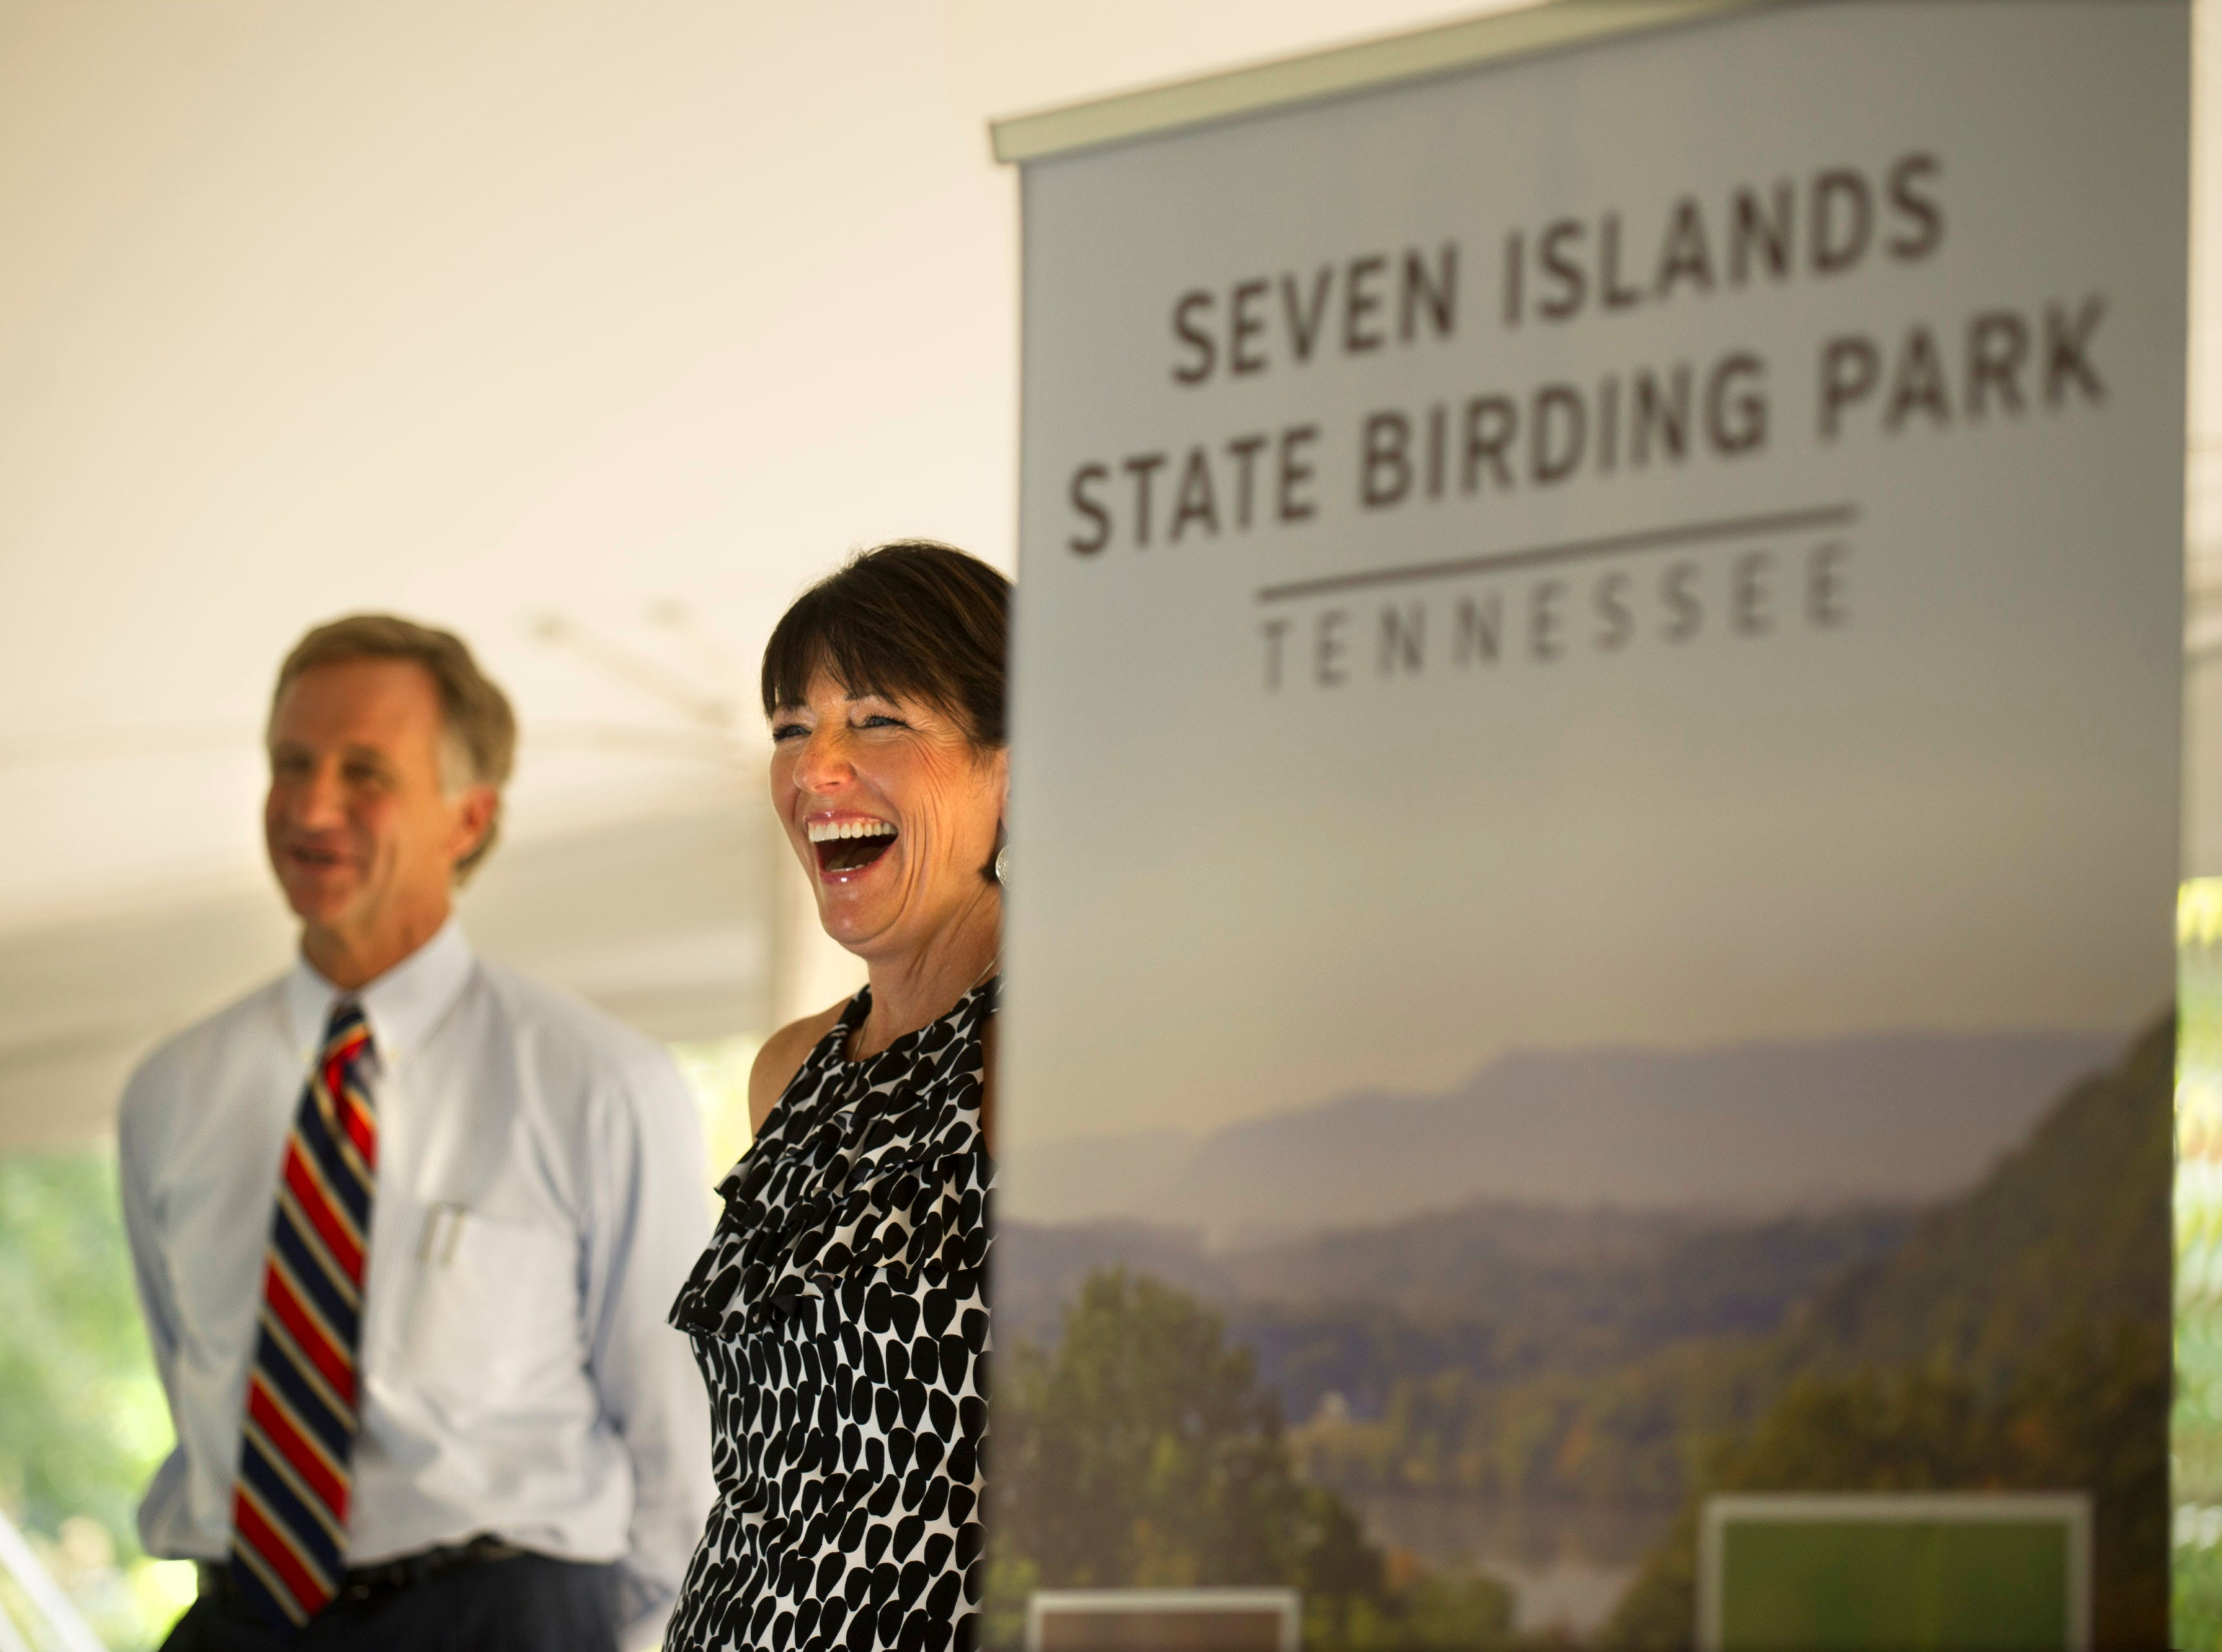 Legacy Parks Foundation Executive Director Carol Evans and Gov. Bill Haslam are all smiles during the 'Legacy Luncheon for the Parks' on Friday, Sept. 20, 2013, at Seven Islands Wildlife Refuge. Haslam announced the 400-acre preserve would soon become Seven Islands State Birding Park.